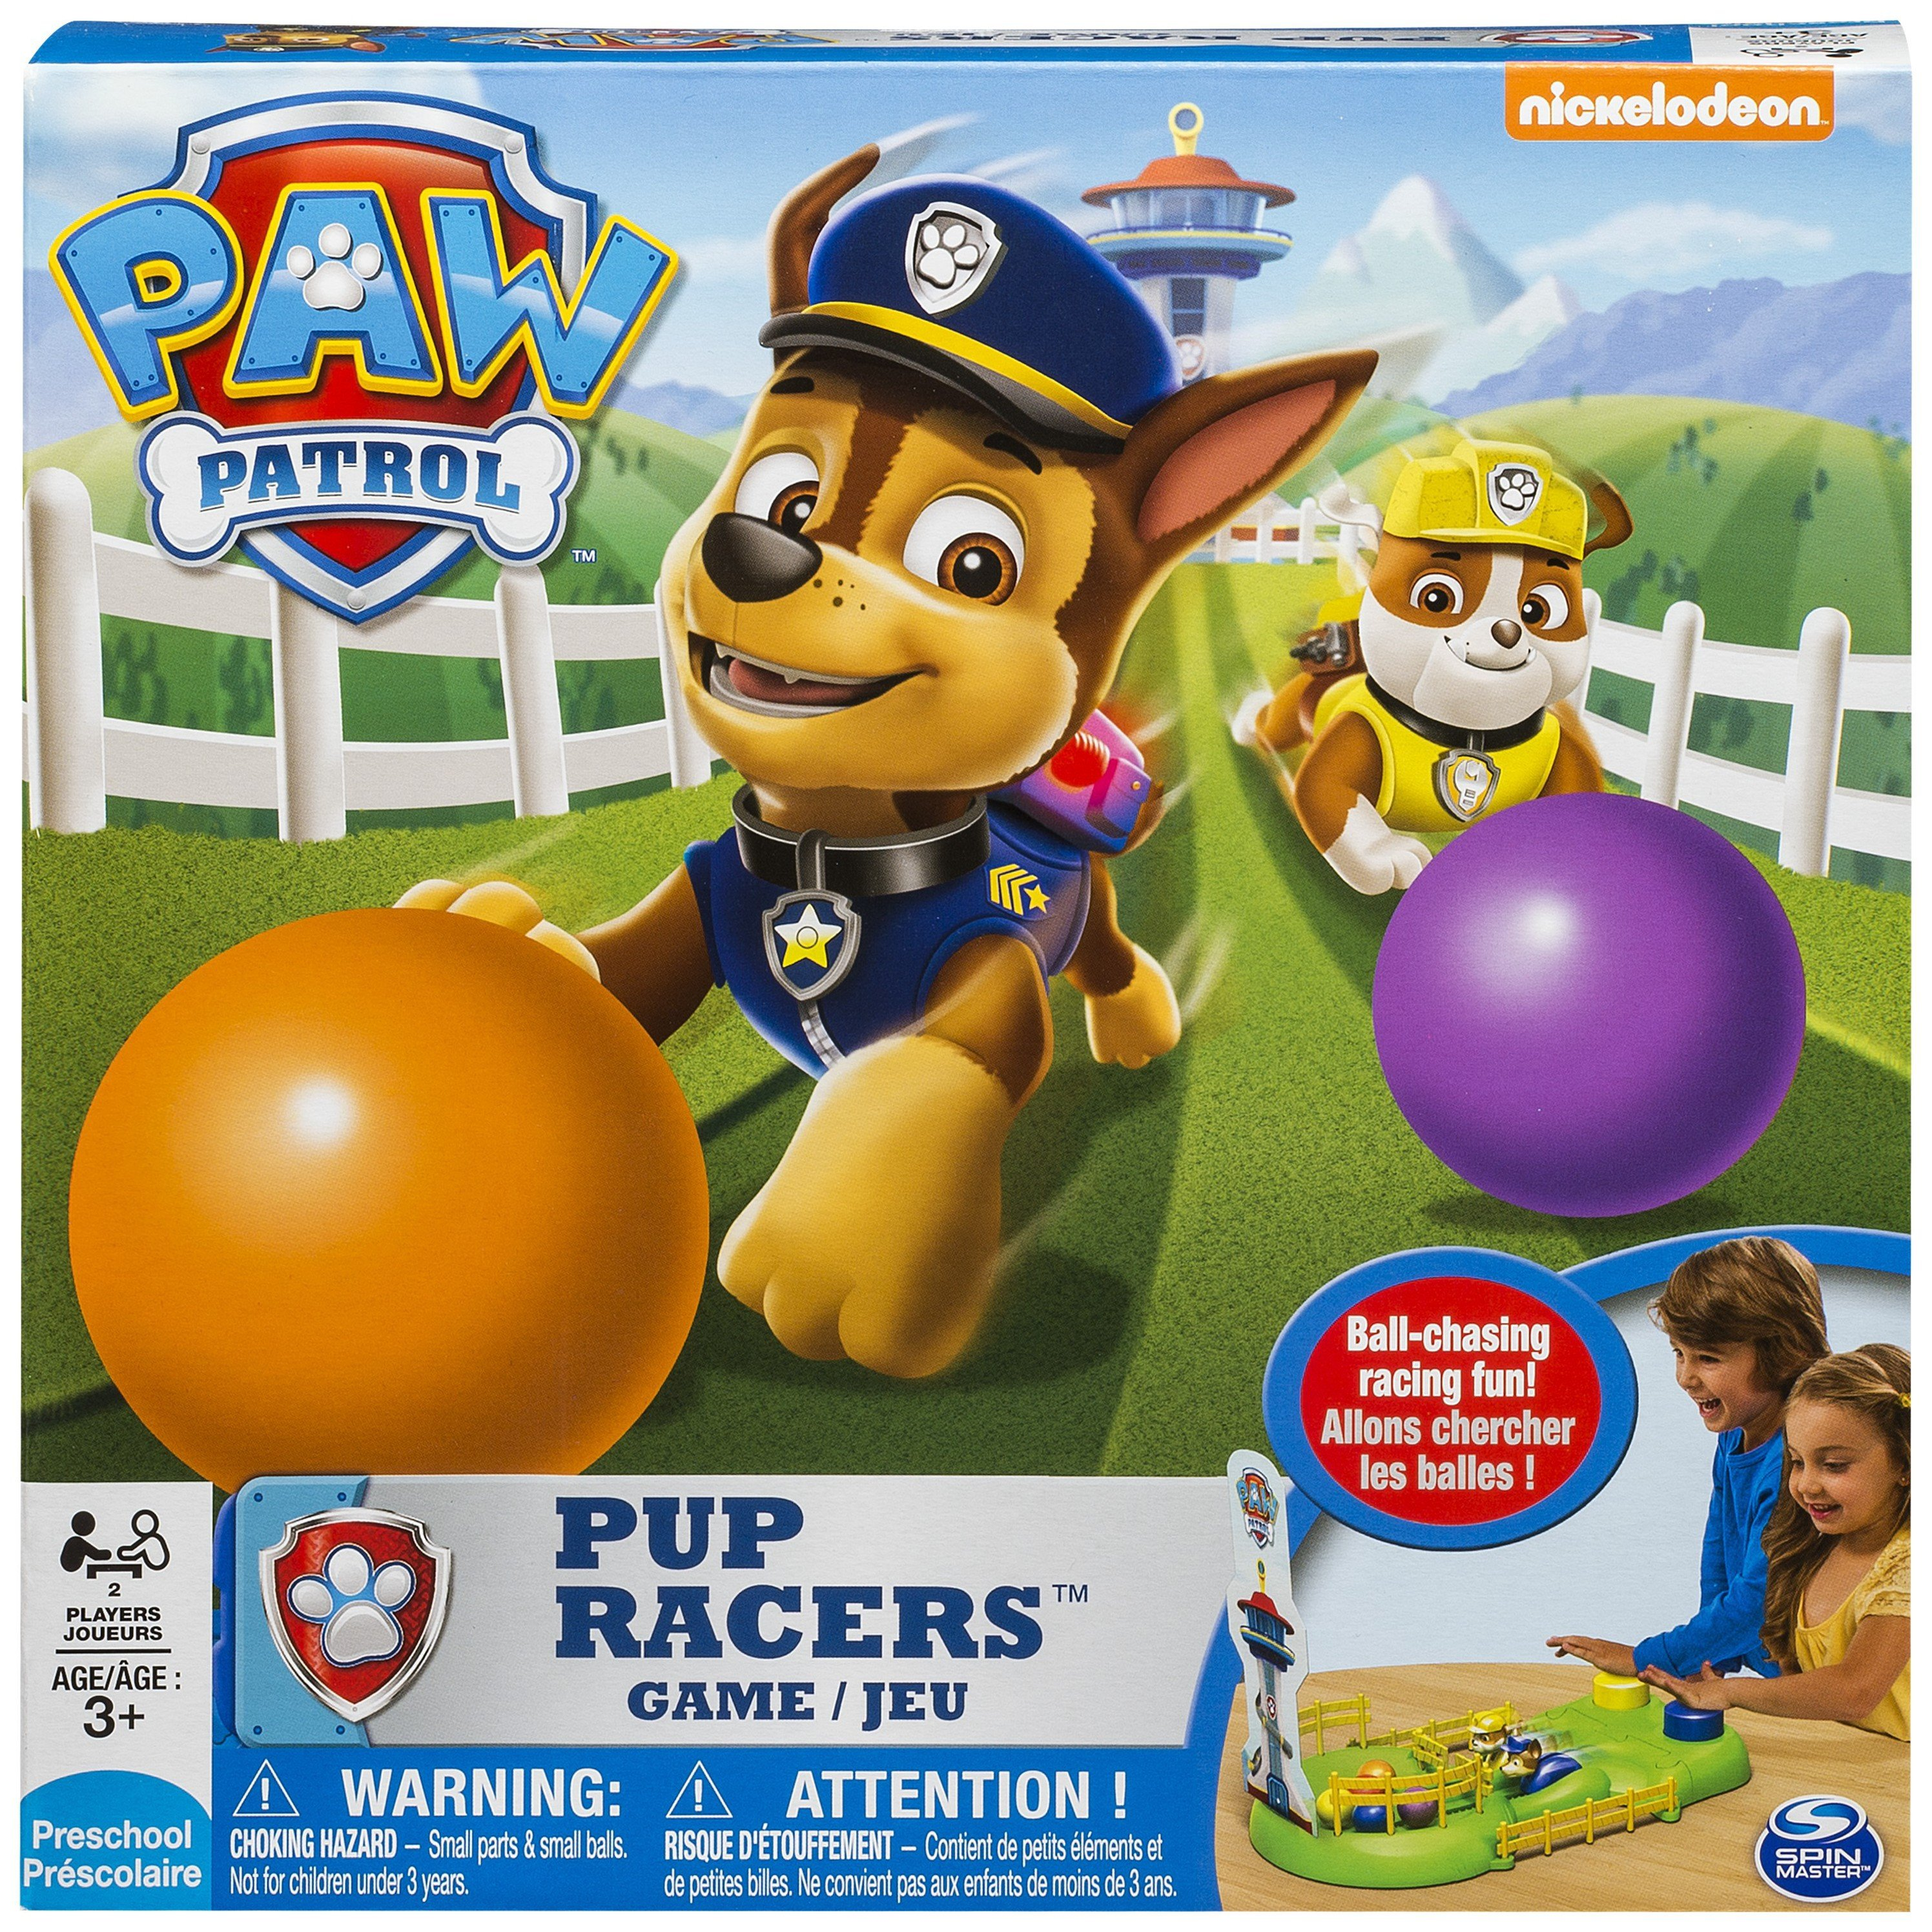 PAW Patrol Pup Racers Game. review